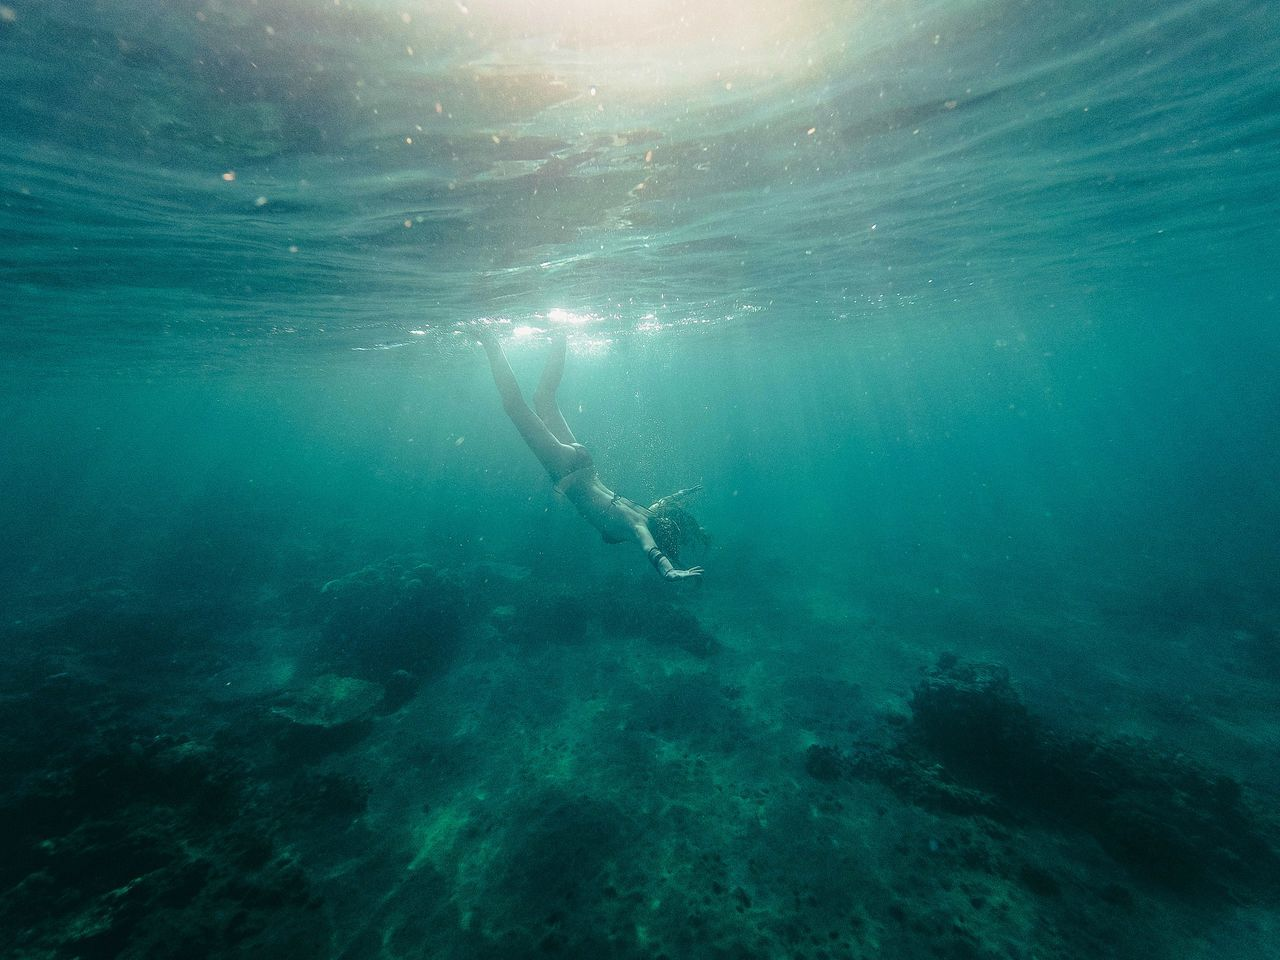 underwater, undersea, real people, sea, water, adventure, scuba diving, exploration, beauty in nature, nature, swimming, one person, day, scuba diver, outdoors, people